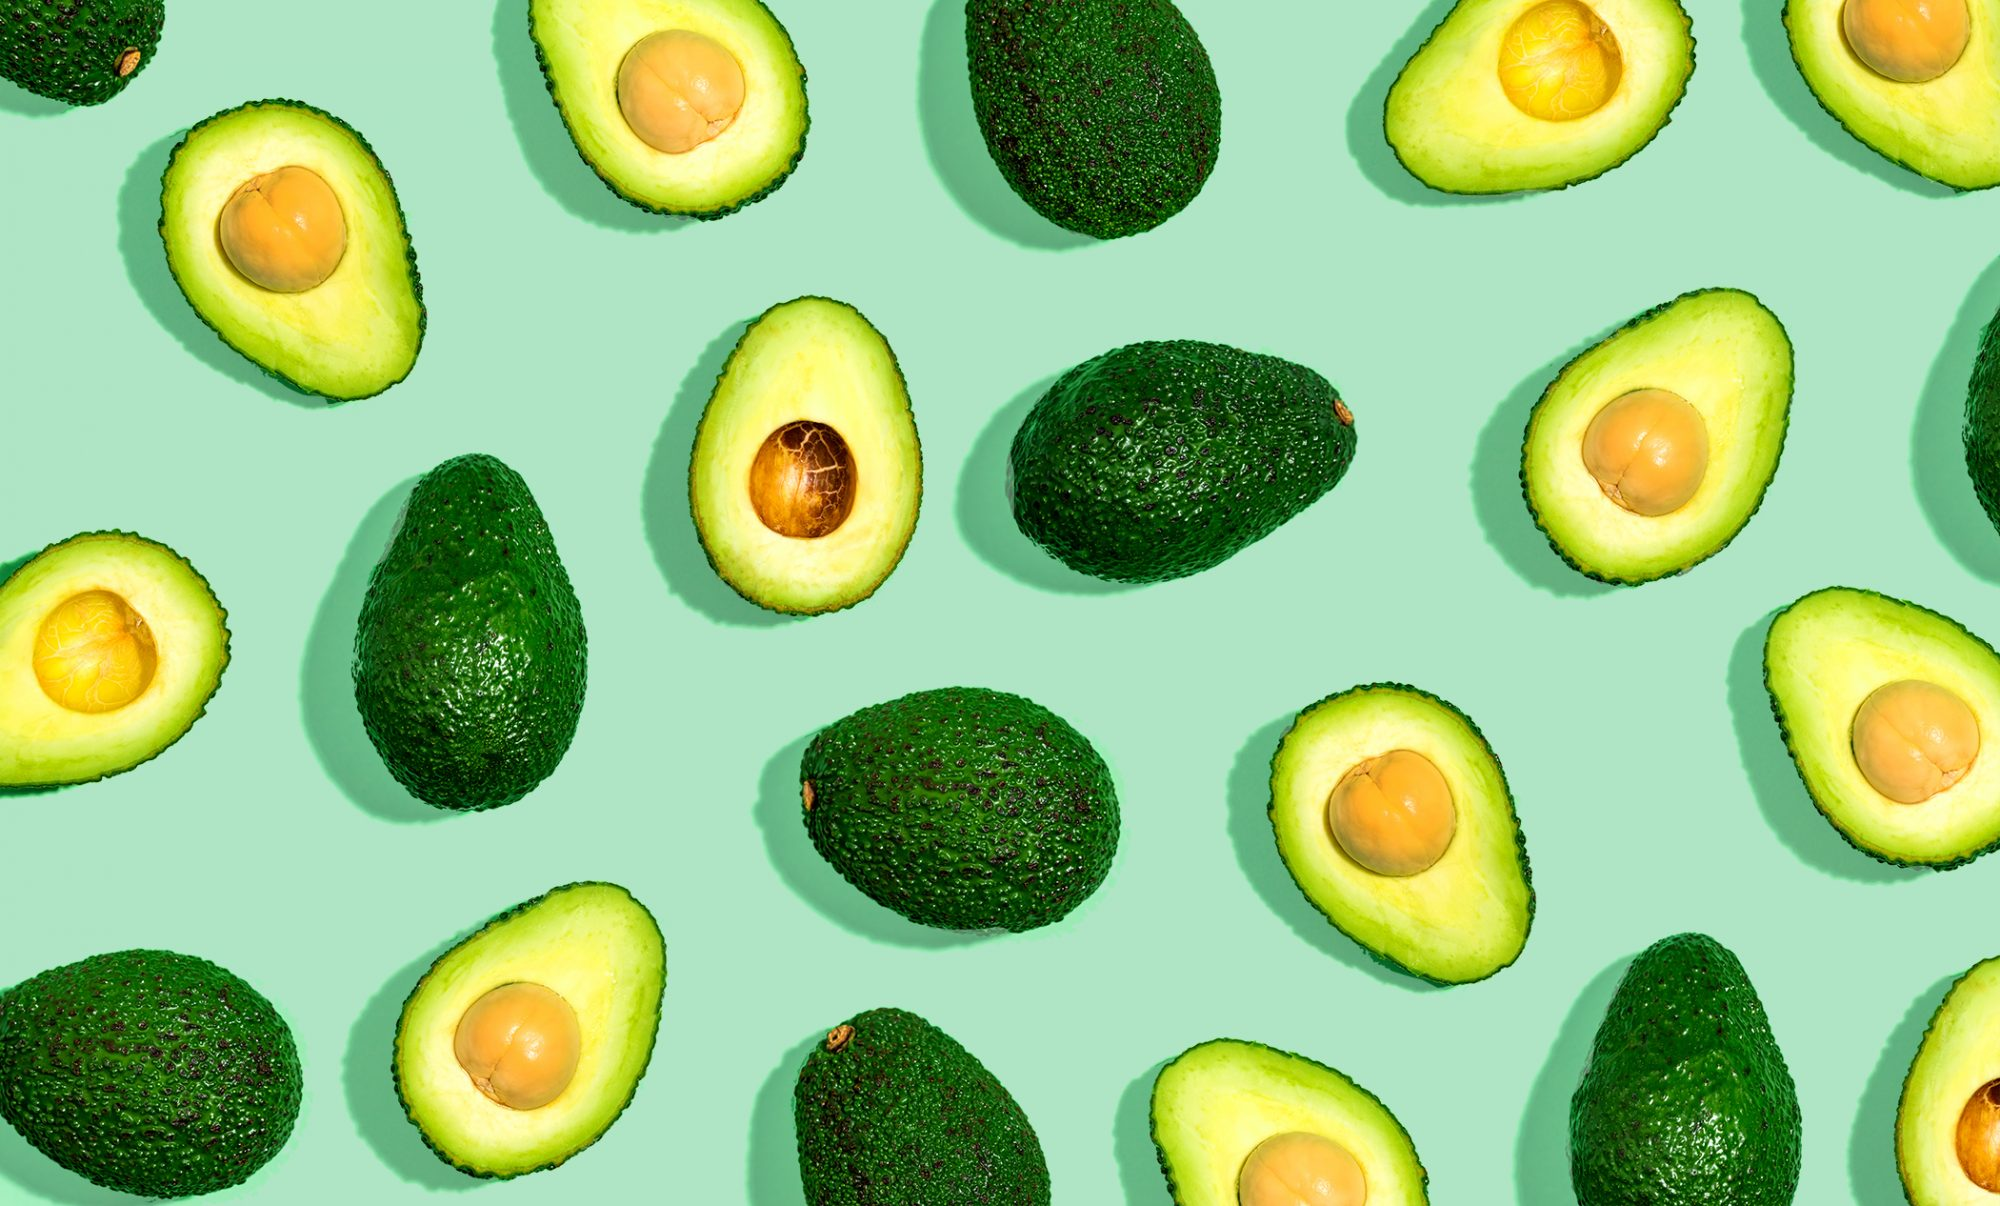 4 Insanely Clever Ways to Eat Avocados